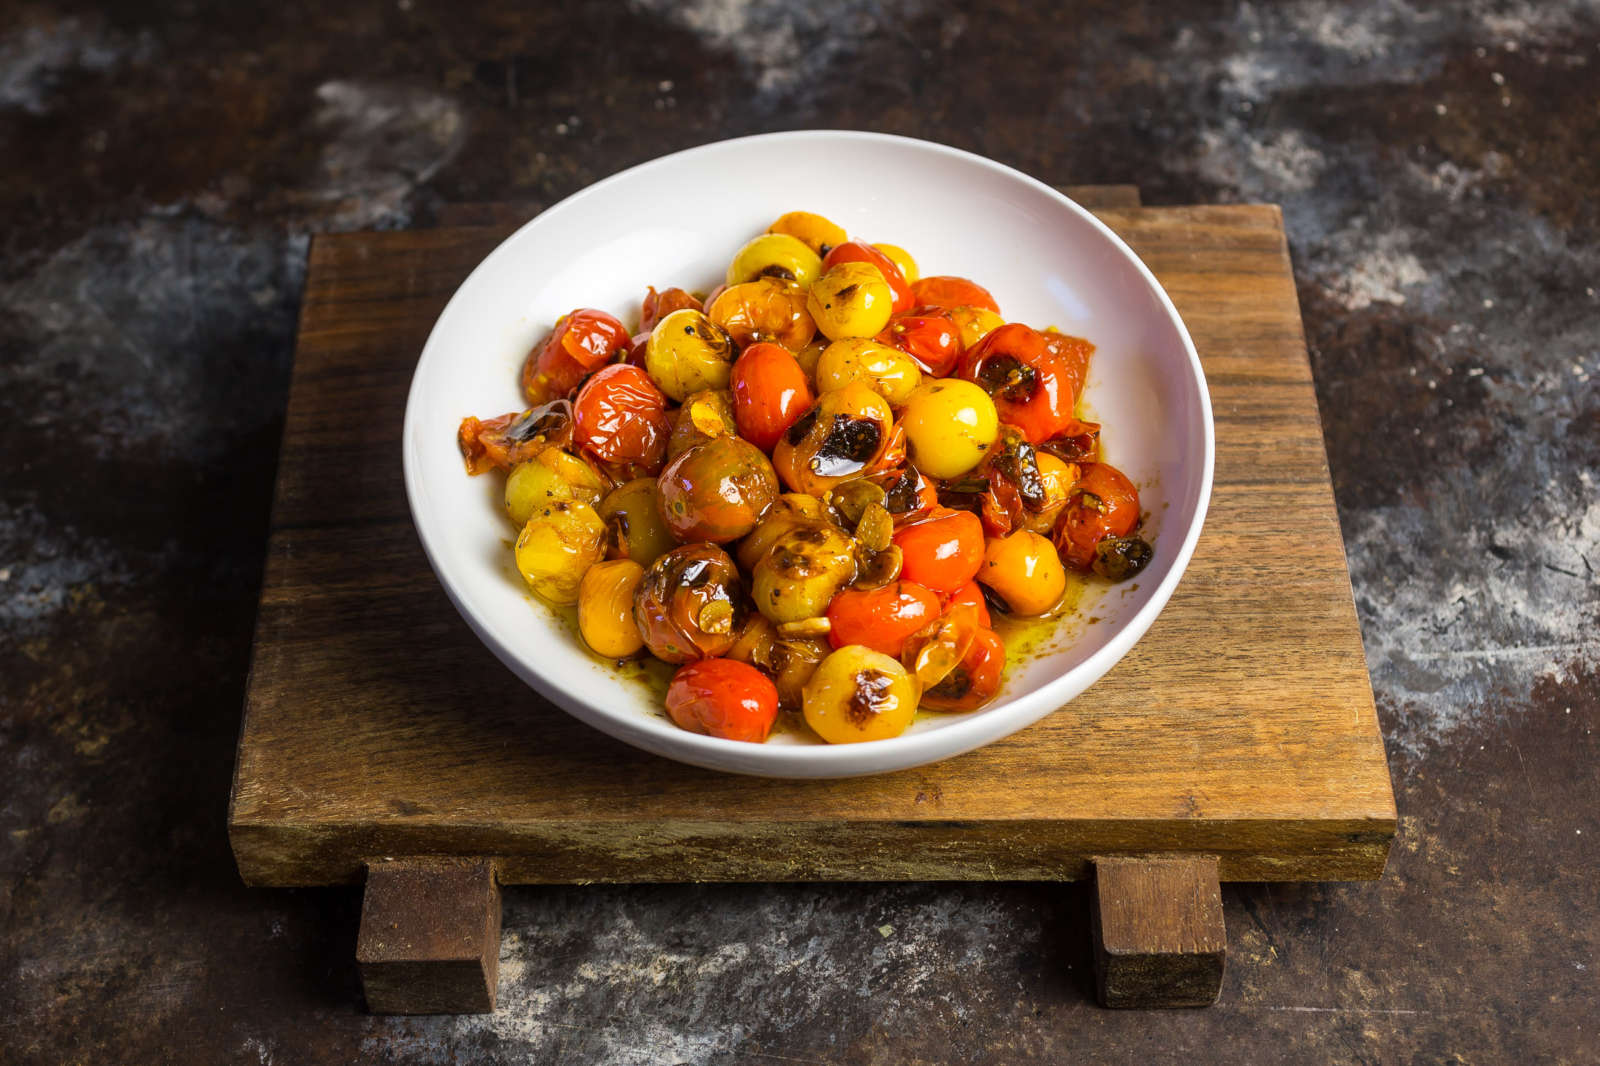 Blistered tomatoes for the crostini